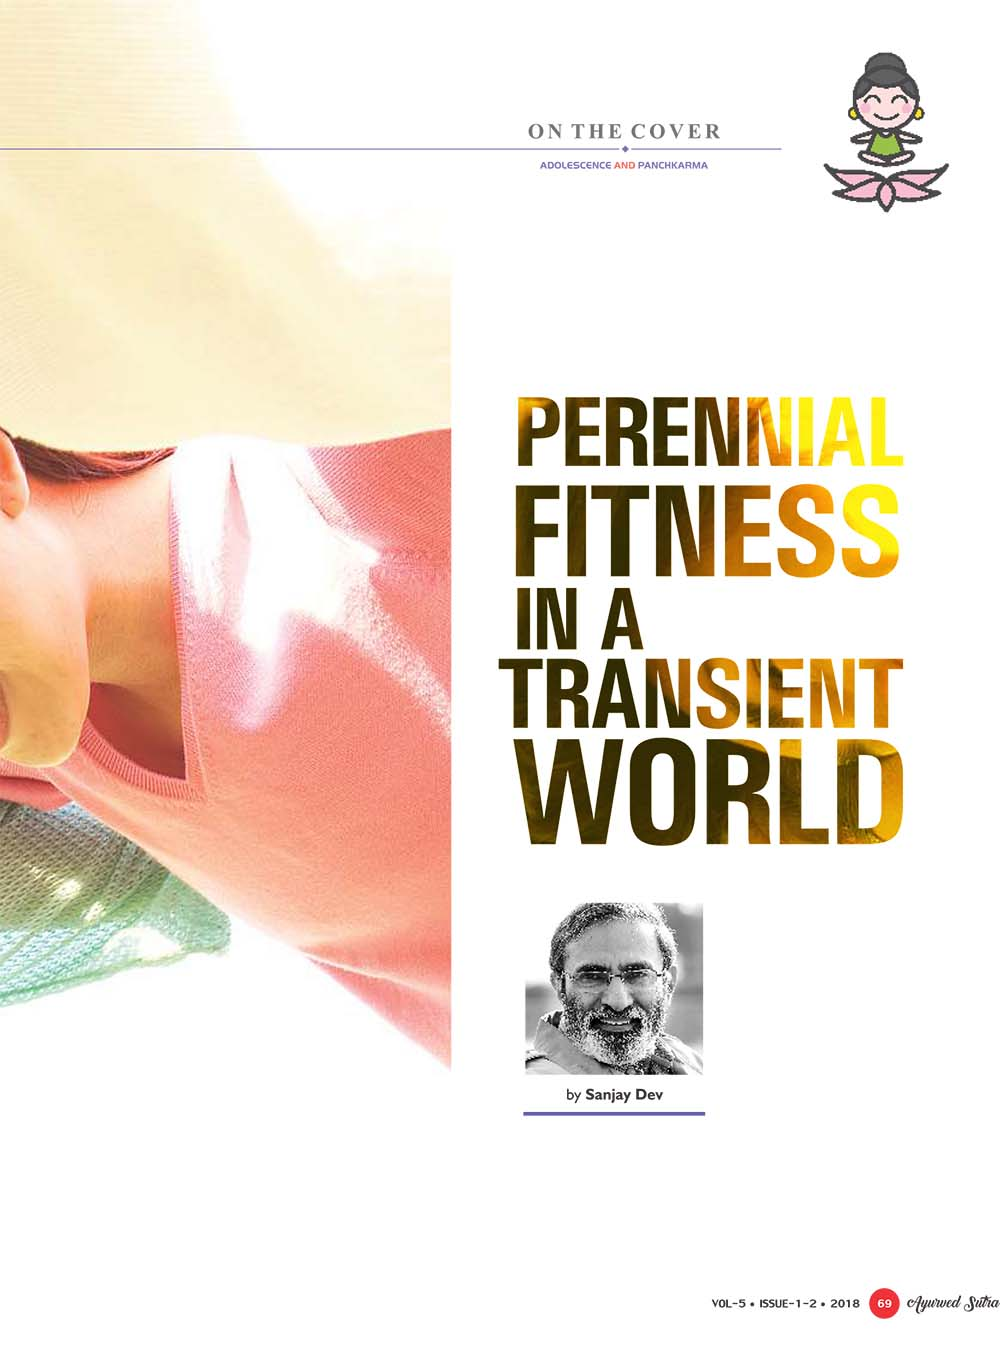 Ayurvedsutra Vol 05 issue 01 02 71 - Perennial fitness in a transient world